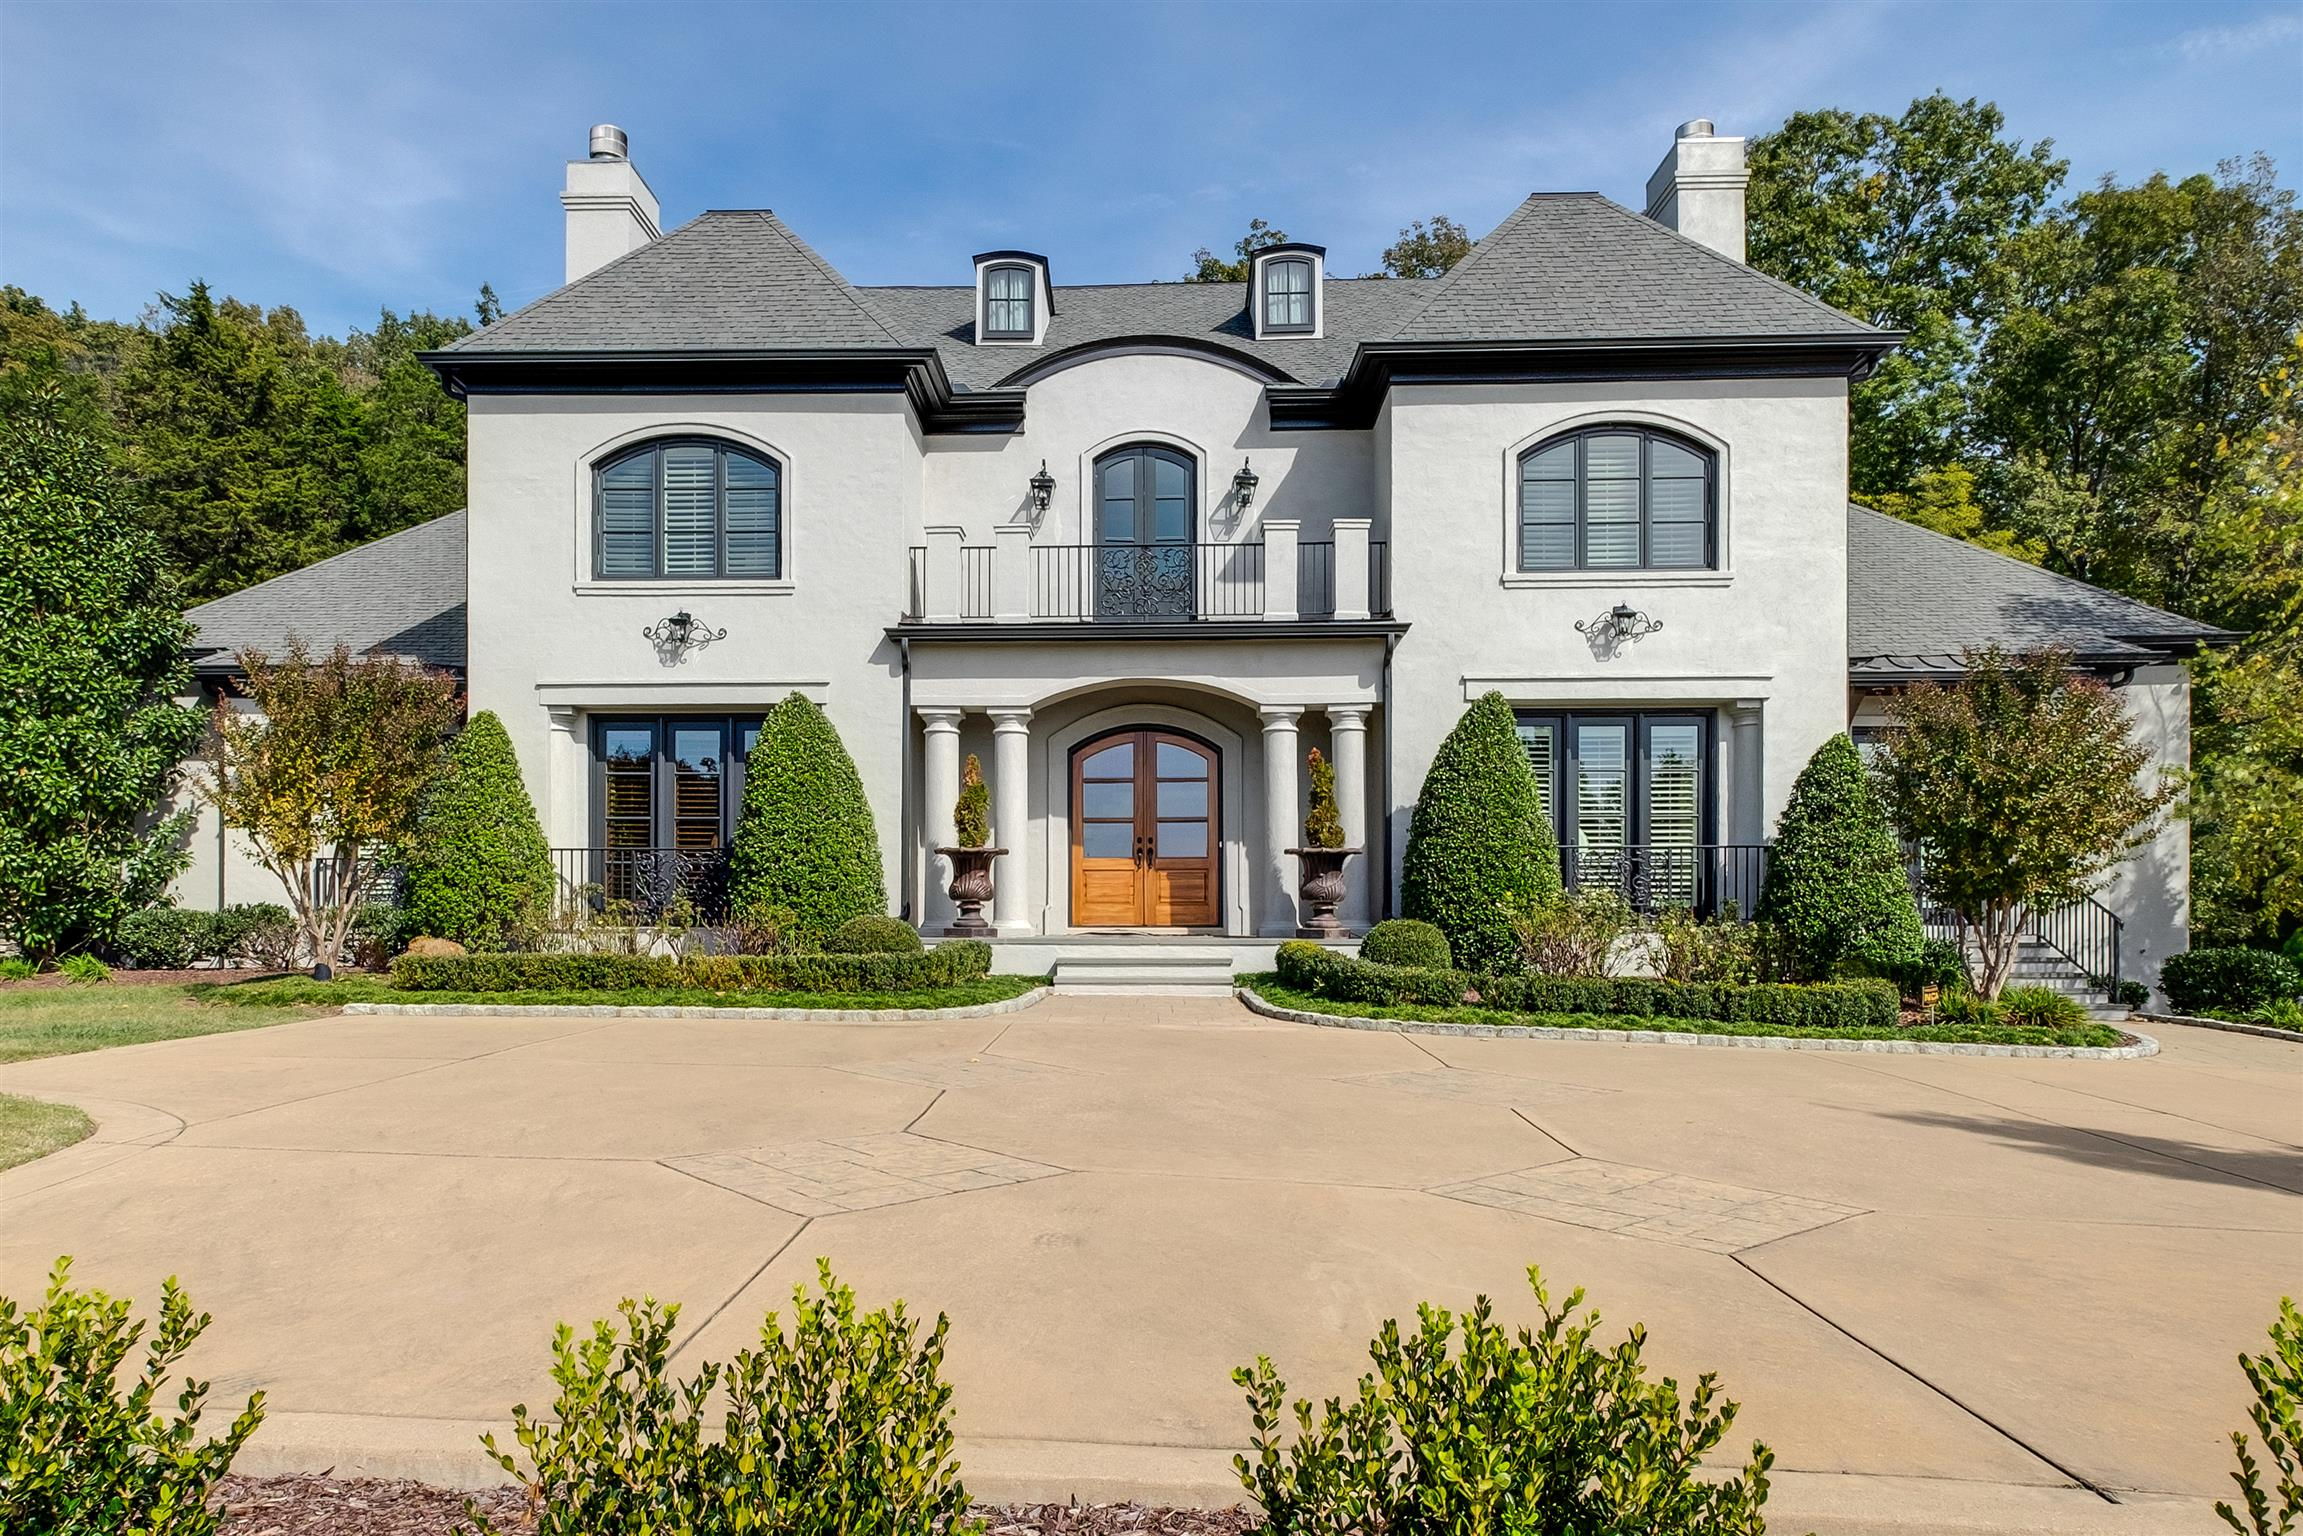 European villa w/2 private acres, incredible views in gated community. Great for gatherings formal dining & living rms, den with ruff hewn cedar beams & f/p open to kitch & bkfast. All 6 bedrms ensuite, Master with his/her walk-in closets and toilet rms. Hdwds on main, elevator, theater & game rm w/kitchen, screened porch, fenced yard, 4 car garage